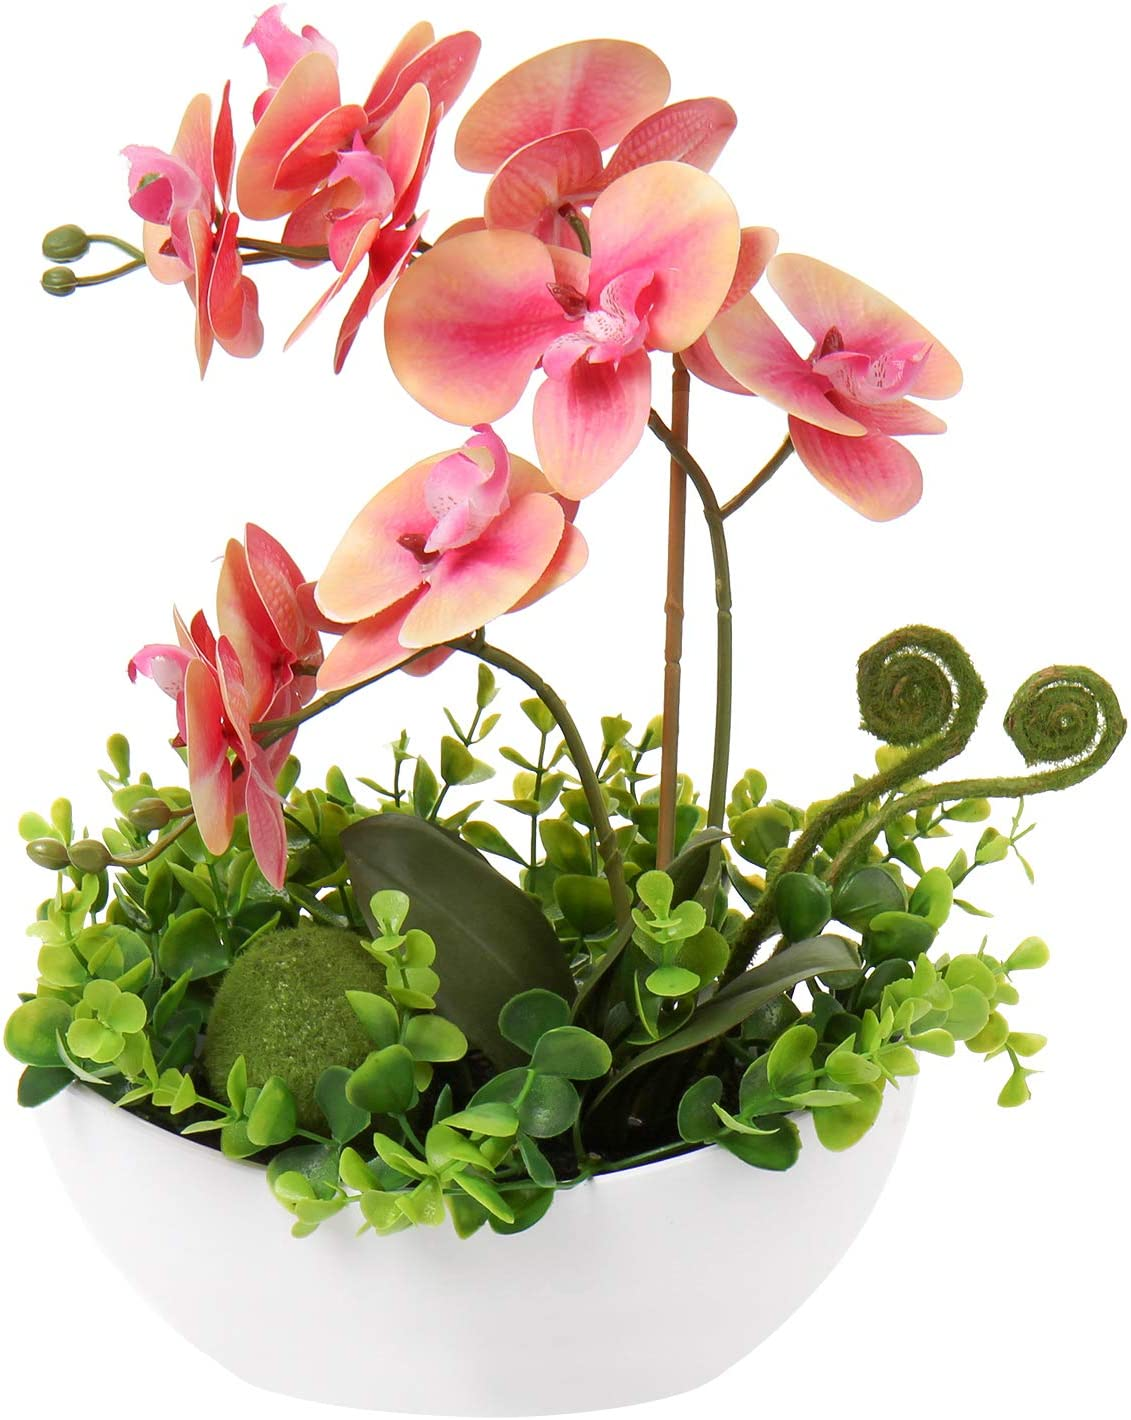 Artificial Orchid Flowers Fake Orchids Flowers with Vase Silk Orchids Faux Flowers Decor Indoor Phalaenopsis Flower in Pot Arrangements for Home Wedding Party Table Bathroom Decoration - Pink